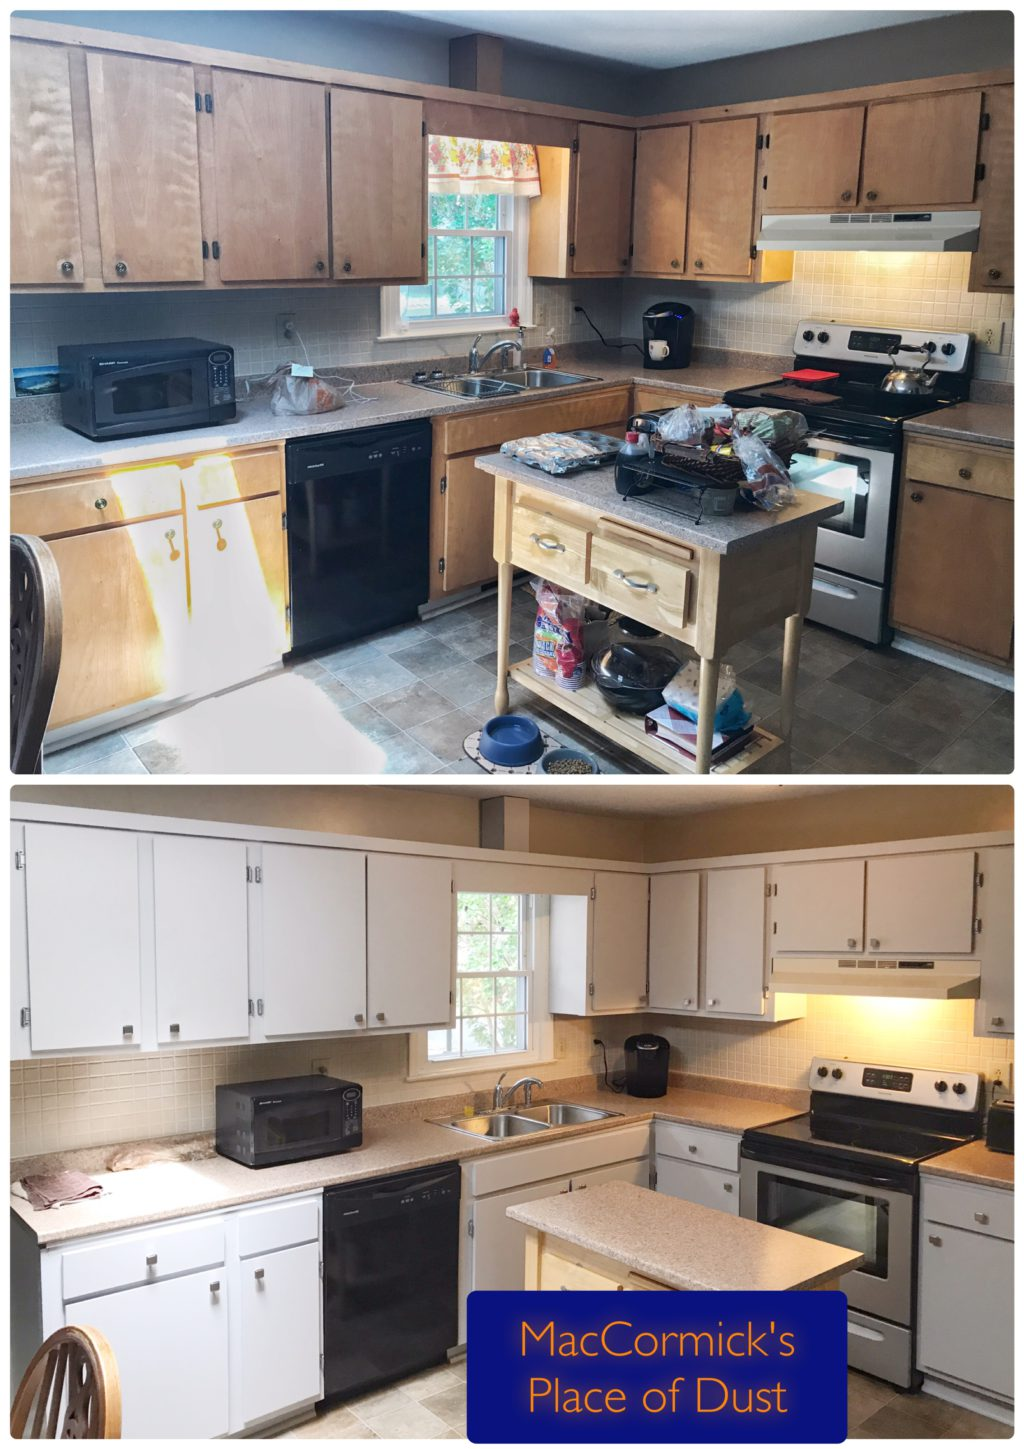 Best Places To Buy Kitchen Cabinets Place Of Dust Kitchen Cabinets 2 Cabinet Girls